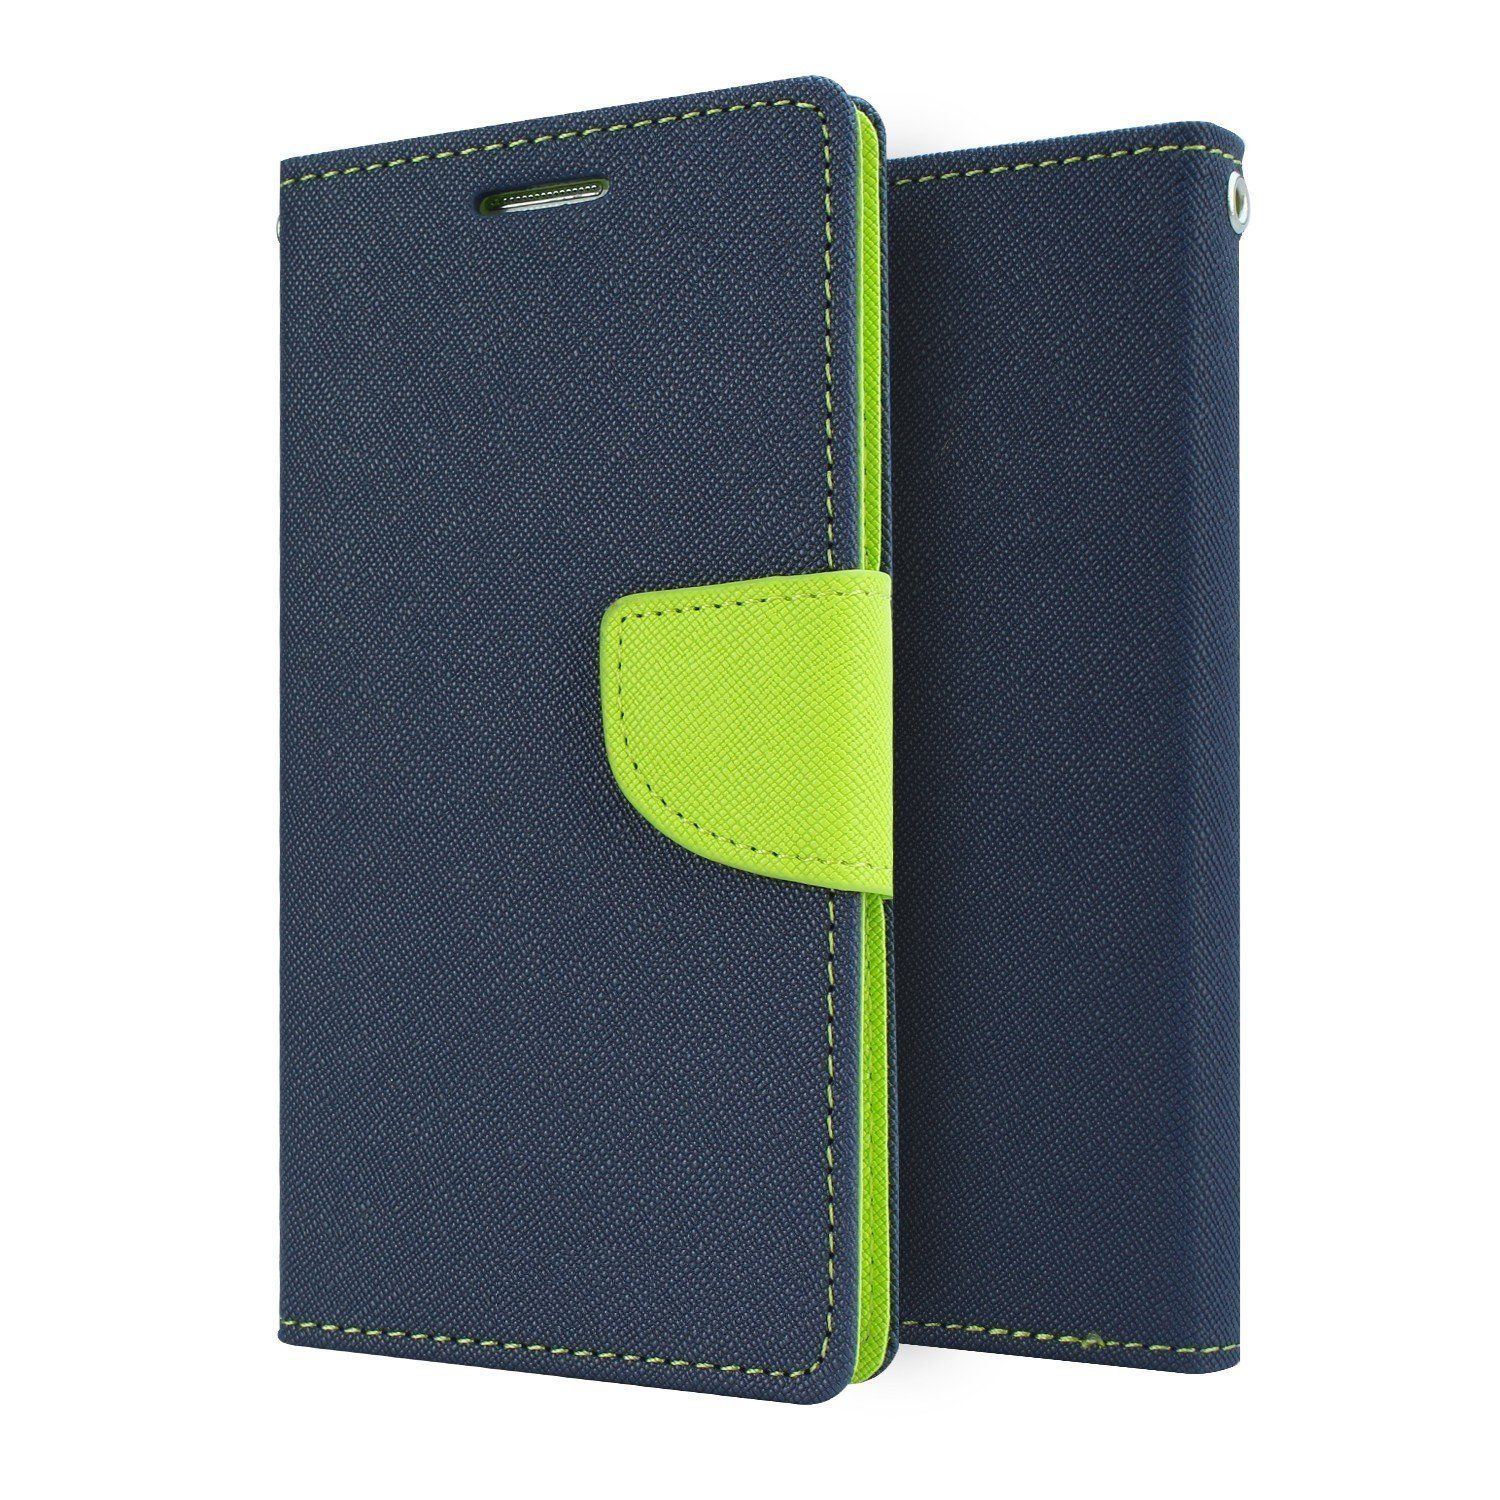 low priced 826ab 47520 Oppo Neo 5 Flip Cover by feomy - Blue